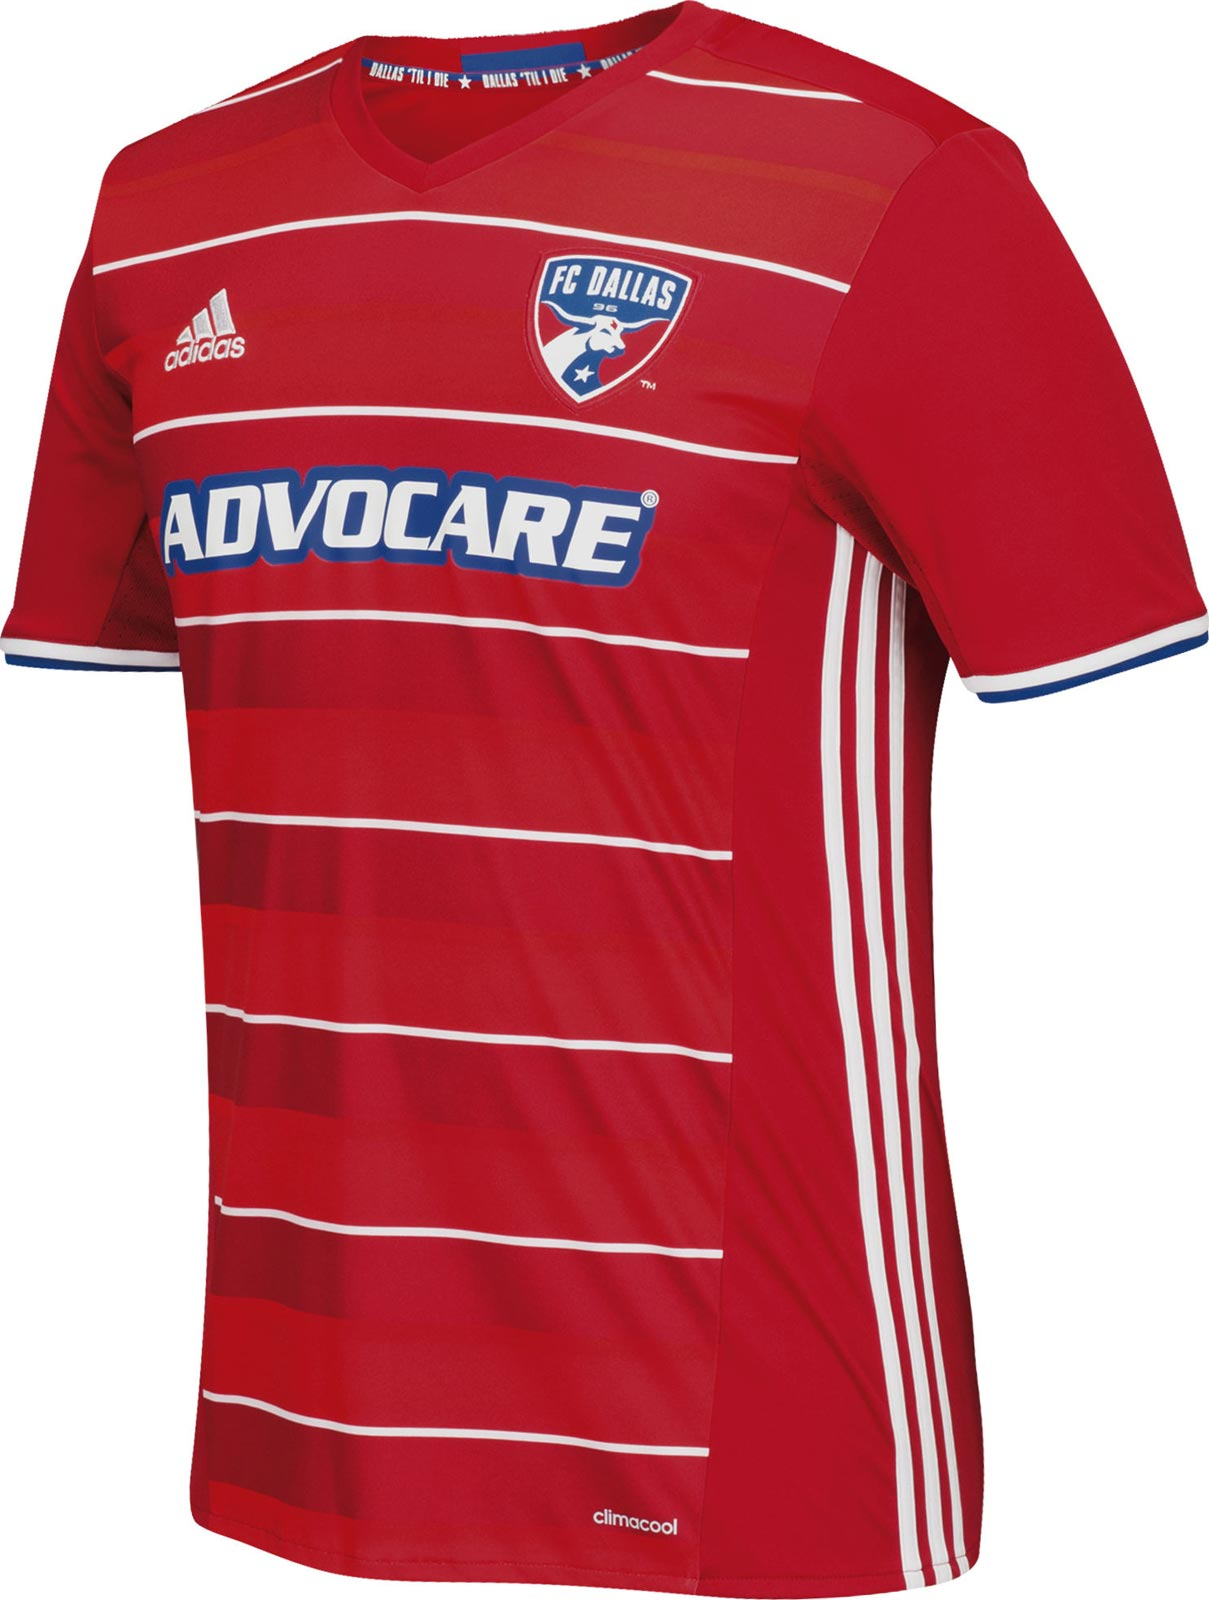 FC Dallas 2016 Jersey Released Footy Headlines